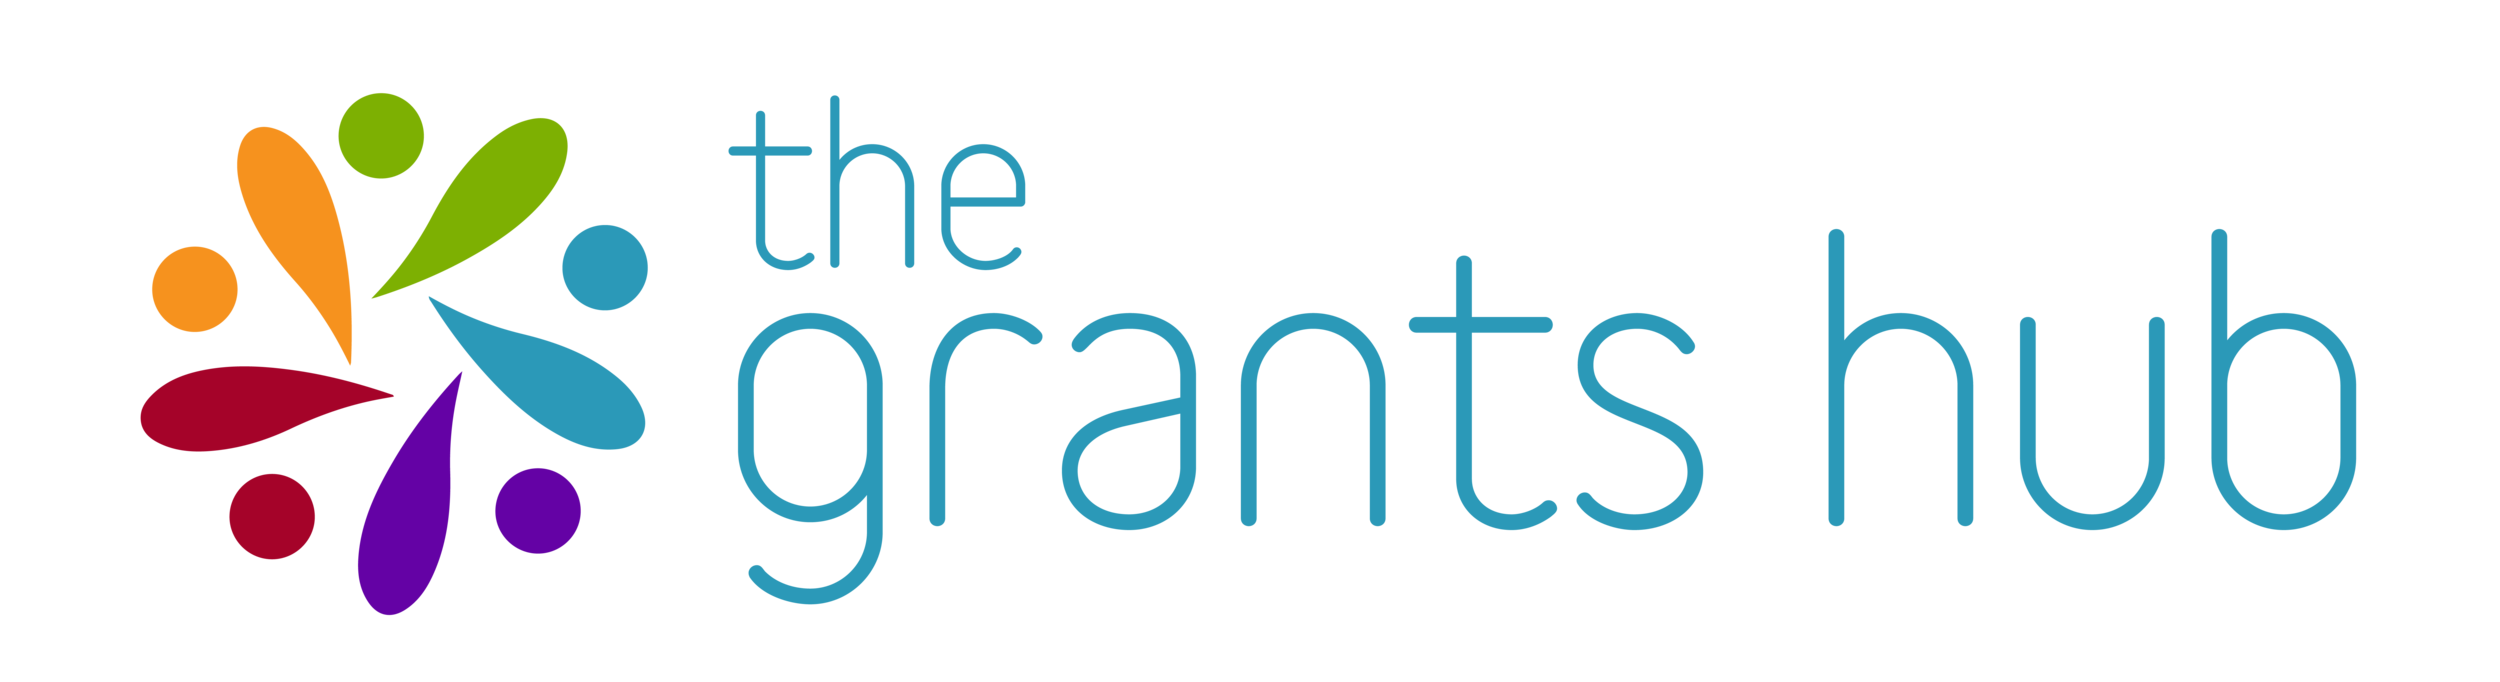 The Grants Hub - The award winning grants directory & team that makes finding funding easy.png